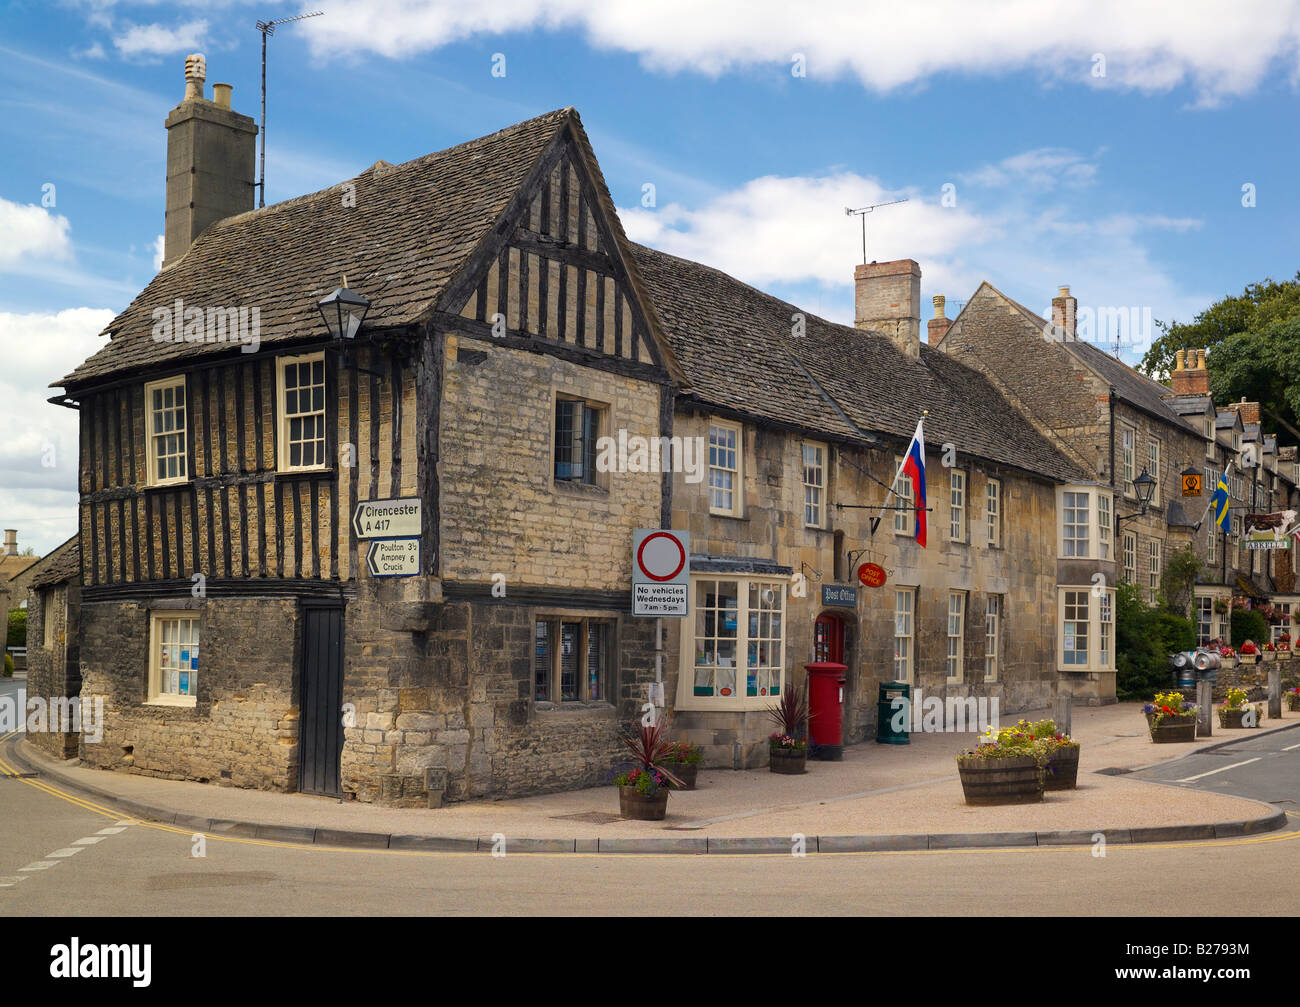 The Post office at the Chanting House Market Square Fairford in the Cotswolds - Stock Image